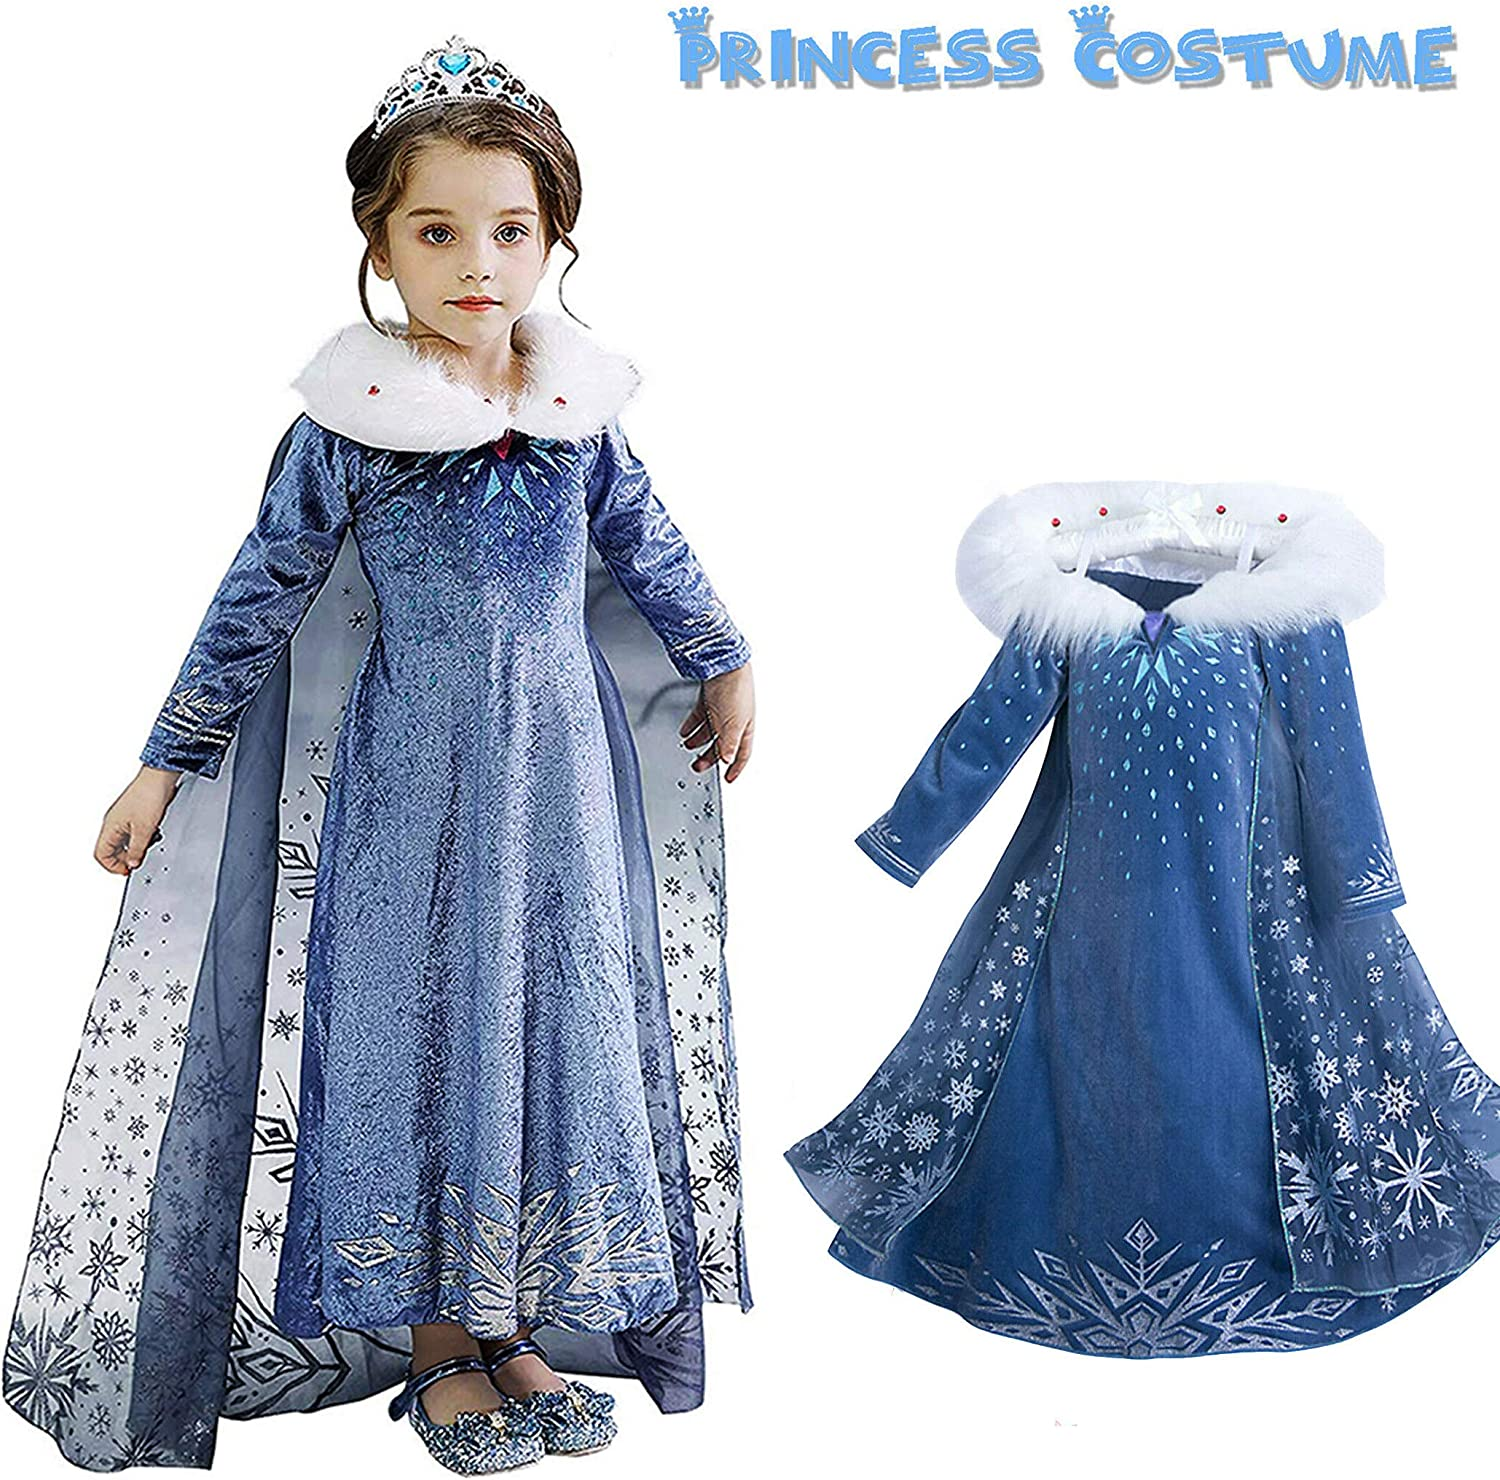 Elsa/&Anna Costume Girls Fancy Dress Kids Halloween Christmas Costumes Ice Queens Princess Dress up Party Outfit 3-8 Years